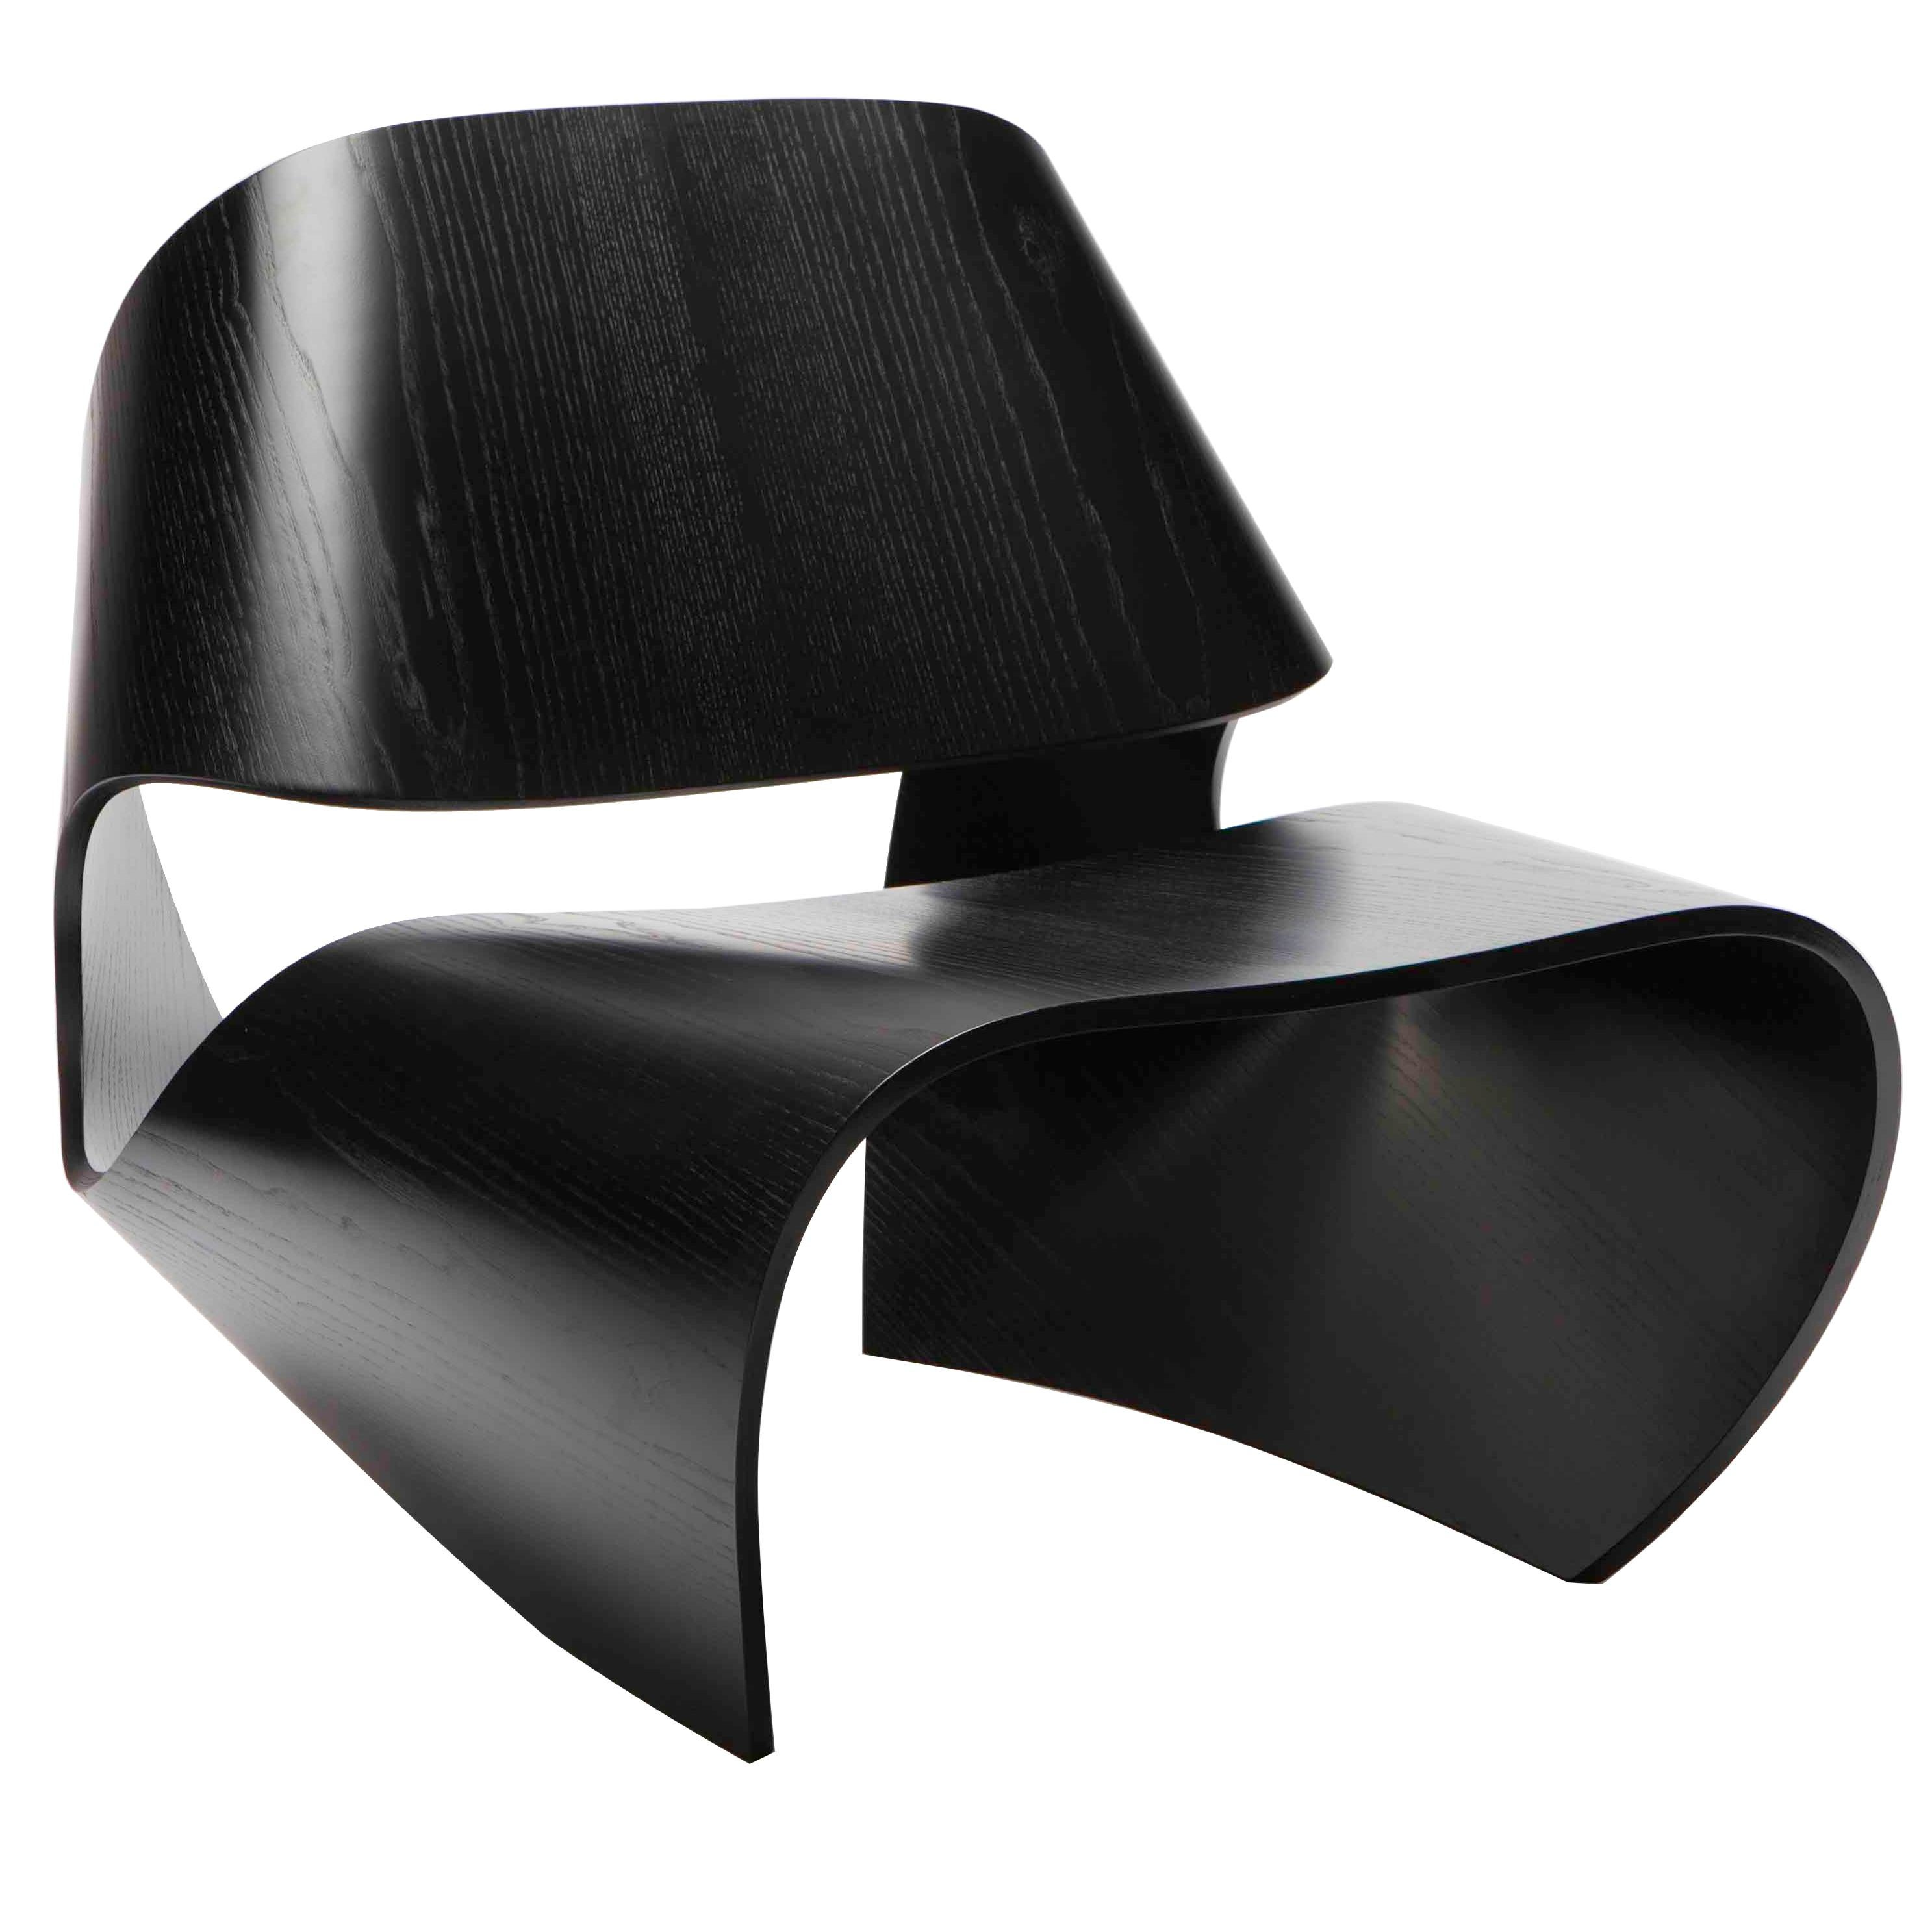 Cowrie, Ebonised Ash Veneered Bent Plywood Lounge Chair by Made in Ratio